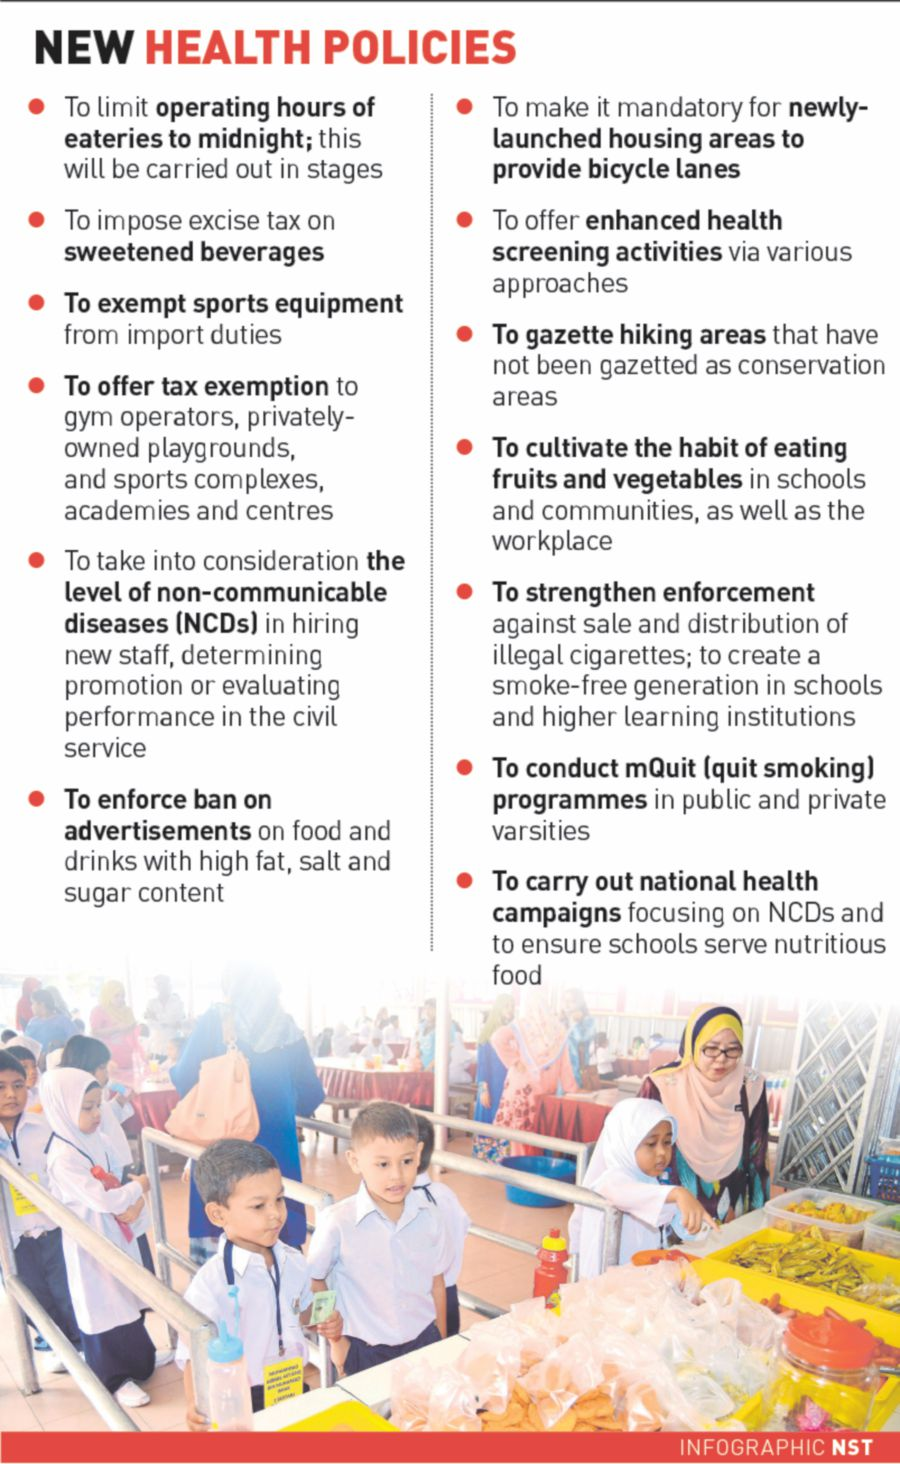 The 13 key policies the Health Ministry may implement to build a healthier Malaysia.